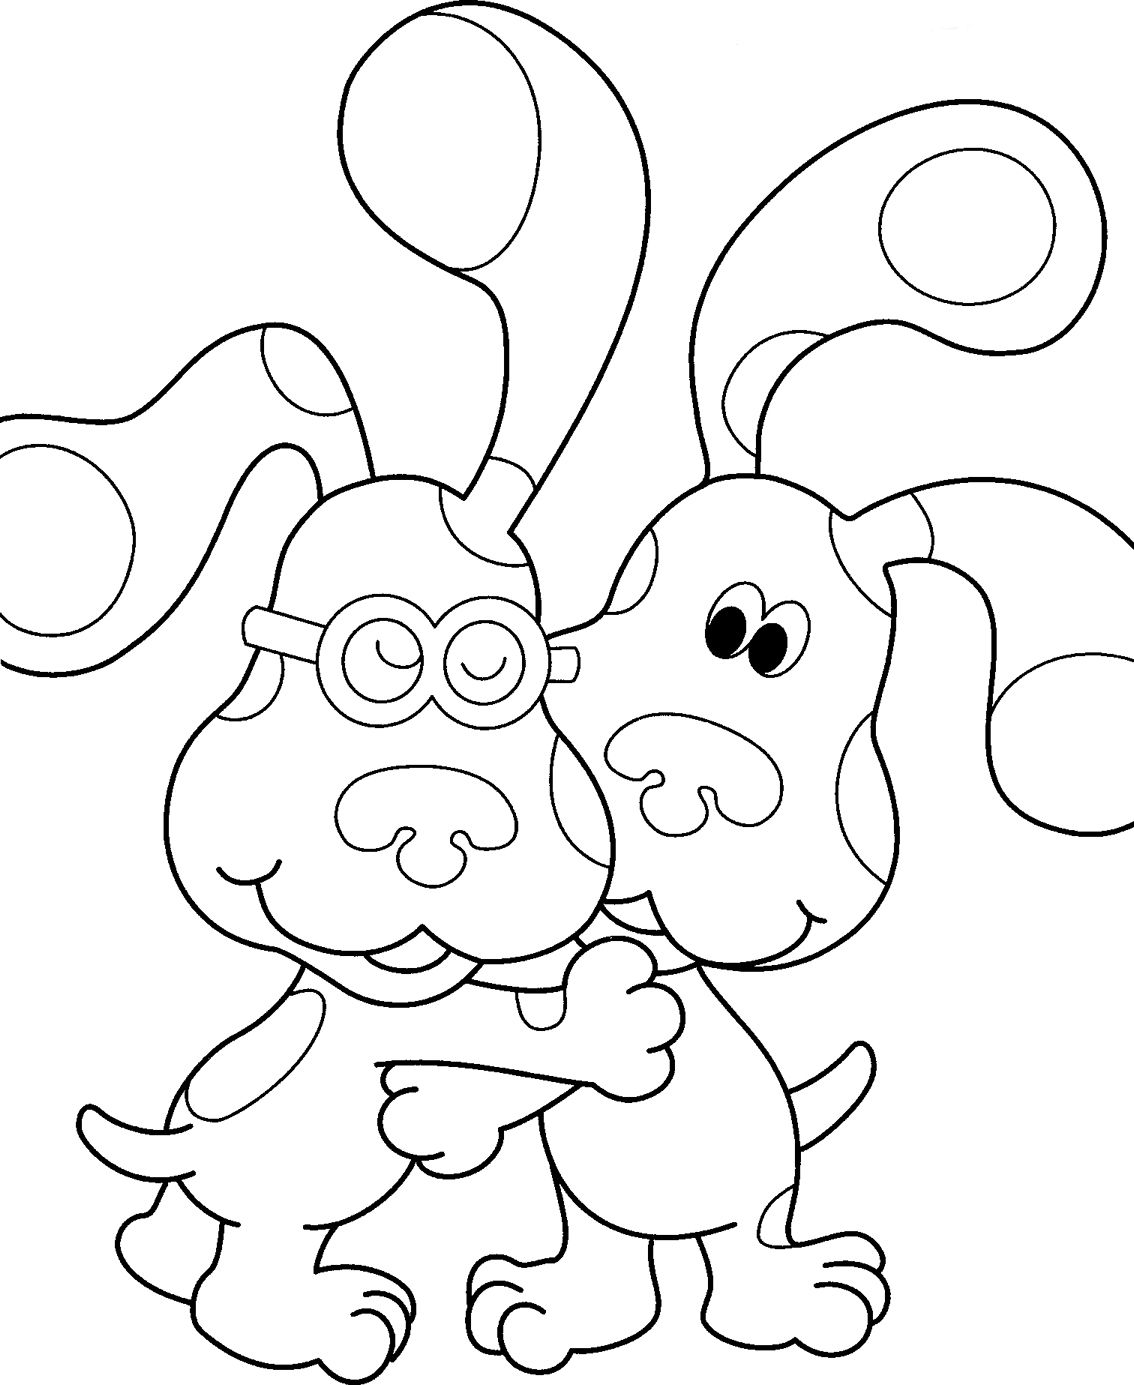 1134x1385 Street Art Coloring Pages Nickjr's Blues Clues Coloring Book